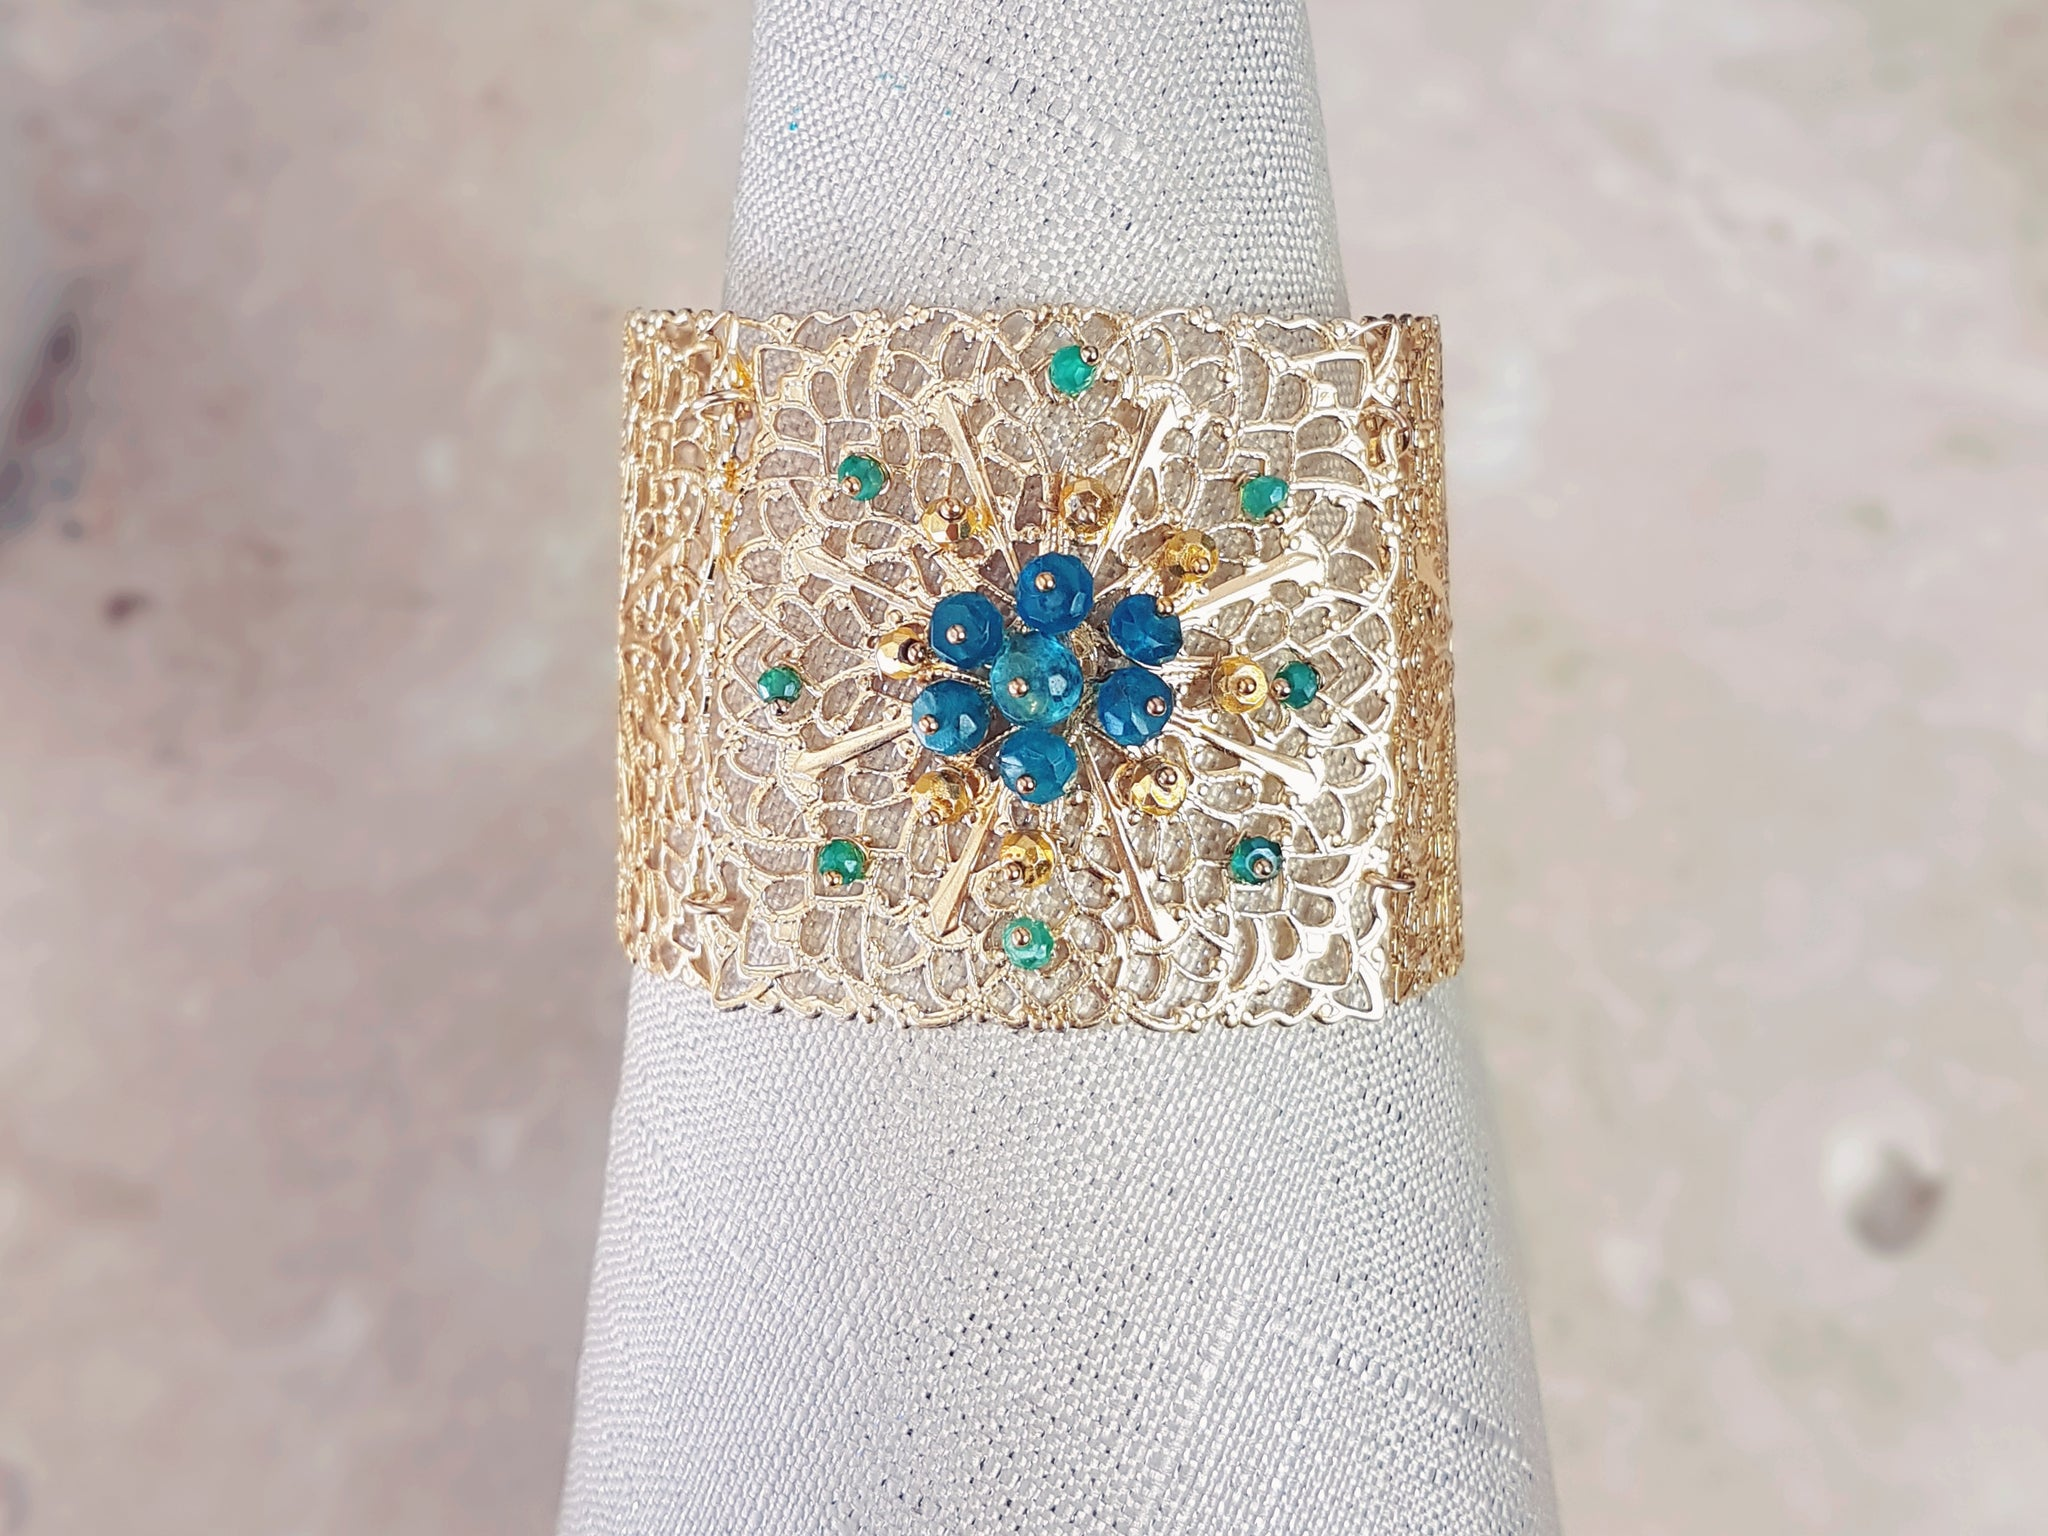 Gold Dipped Filigree Cuff Bracelet with Blue and Green Gemstones in flower pattern